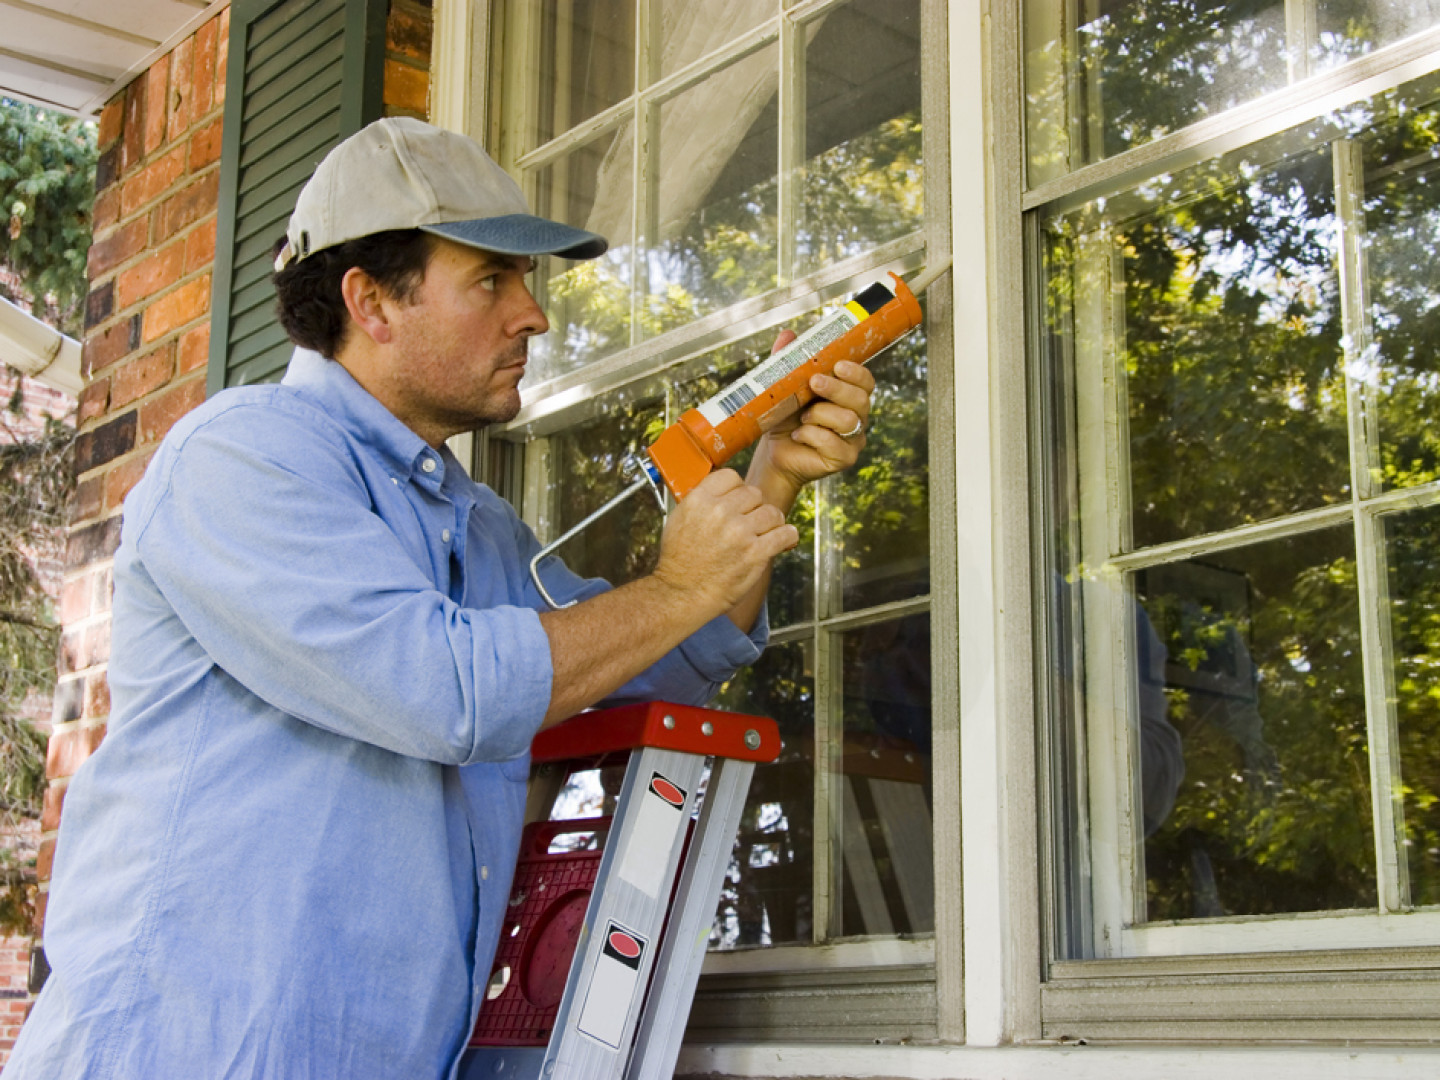 Arrange for window installation service in Leominster & Hudson, MA